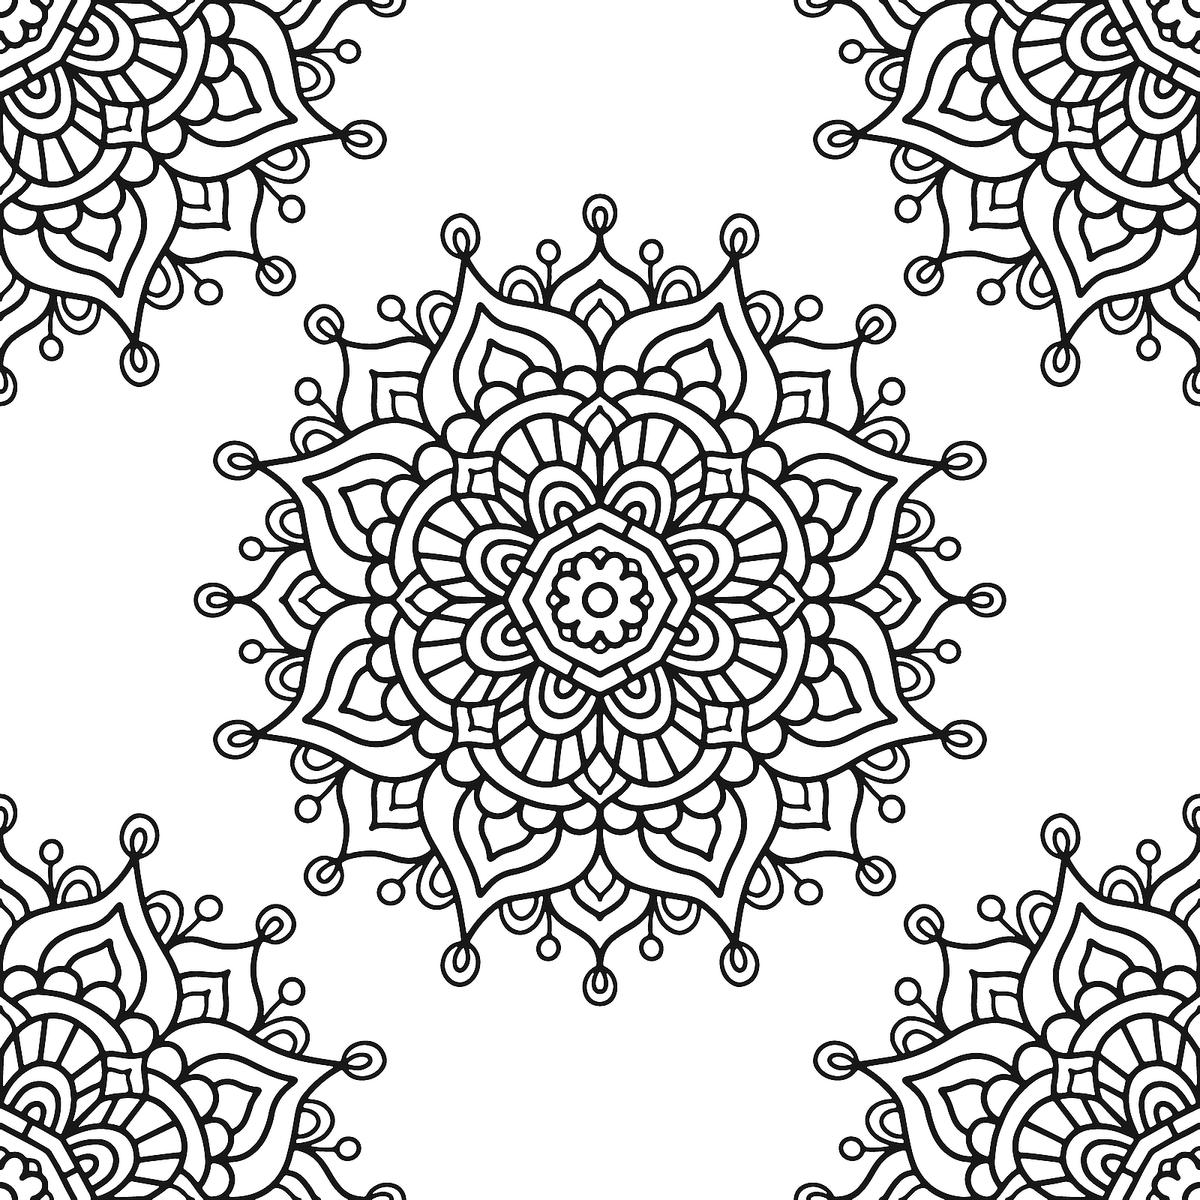 Mandala Coloring Pages Printable Coloring Pages Of Mandalas For